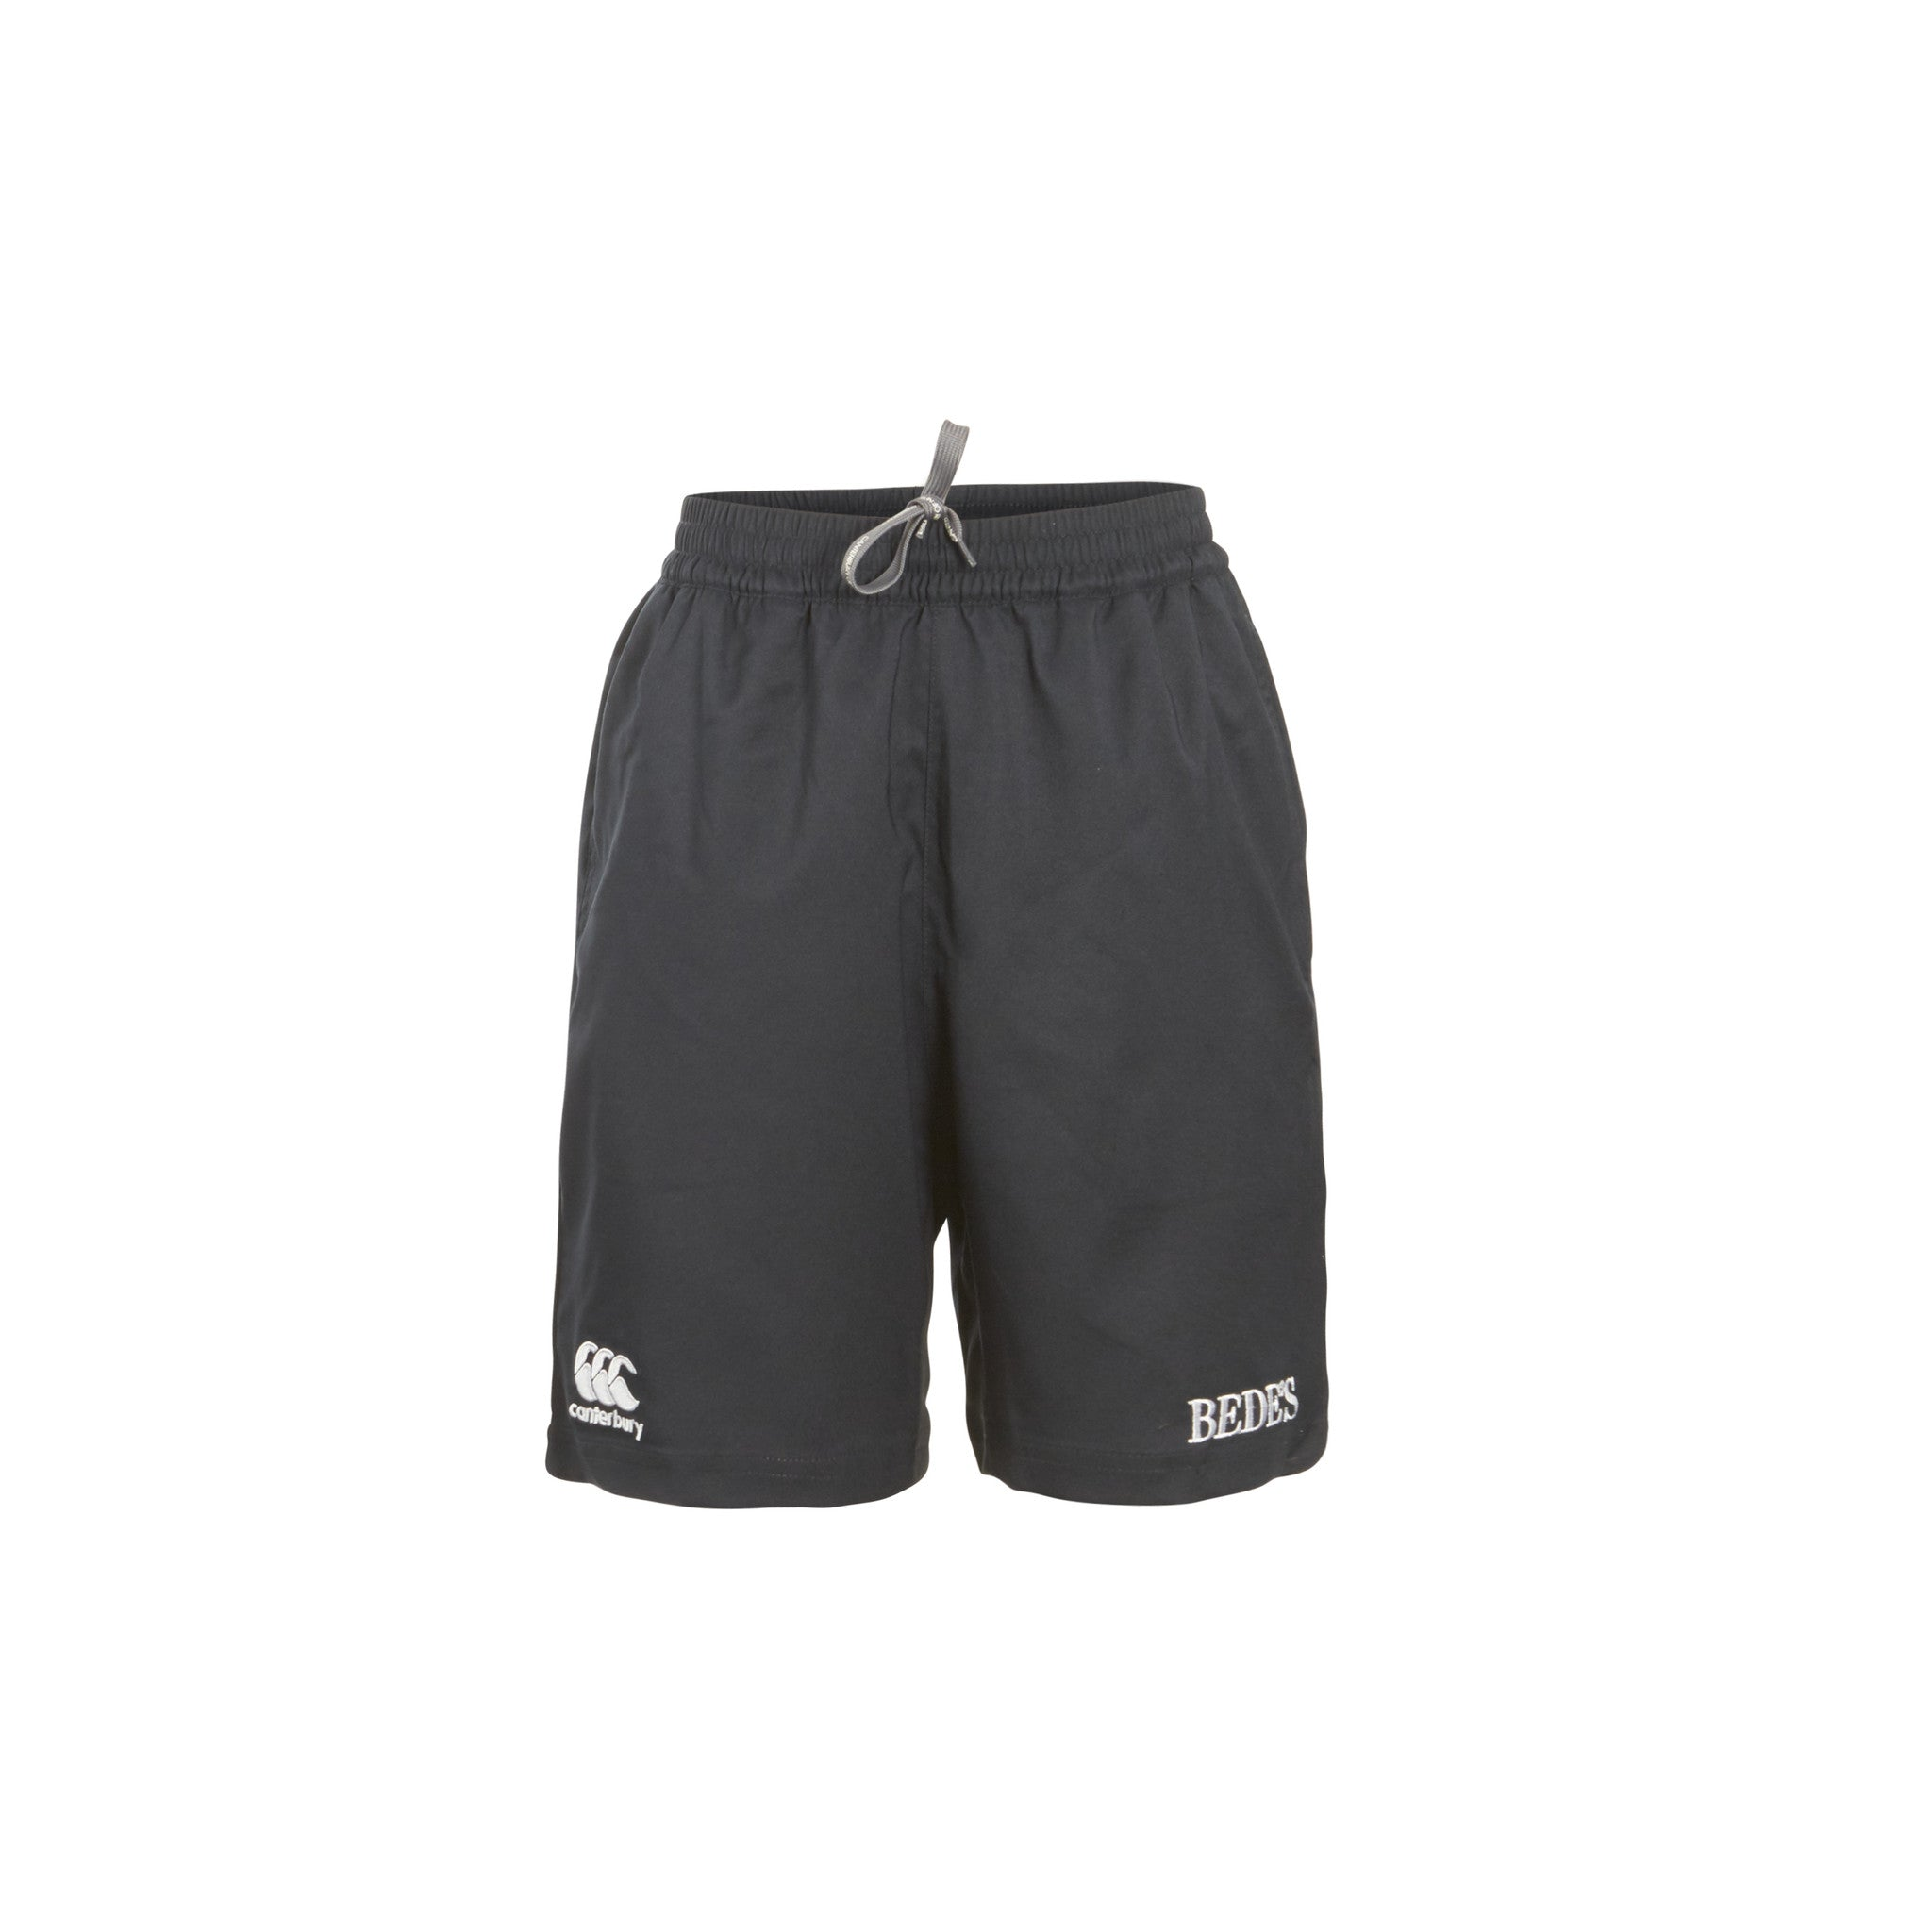 Bede's Black Shorts